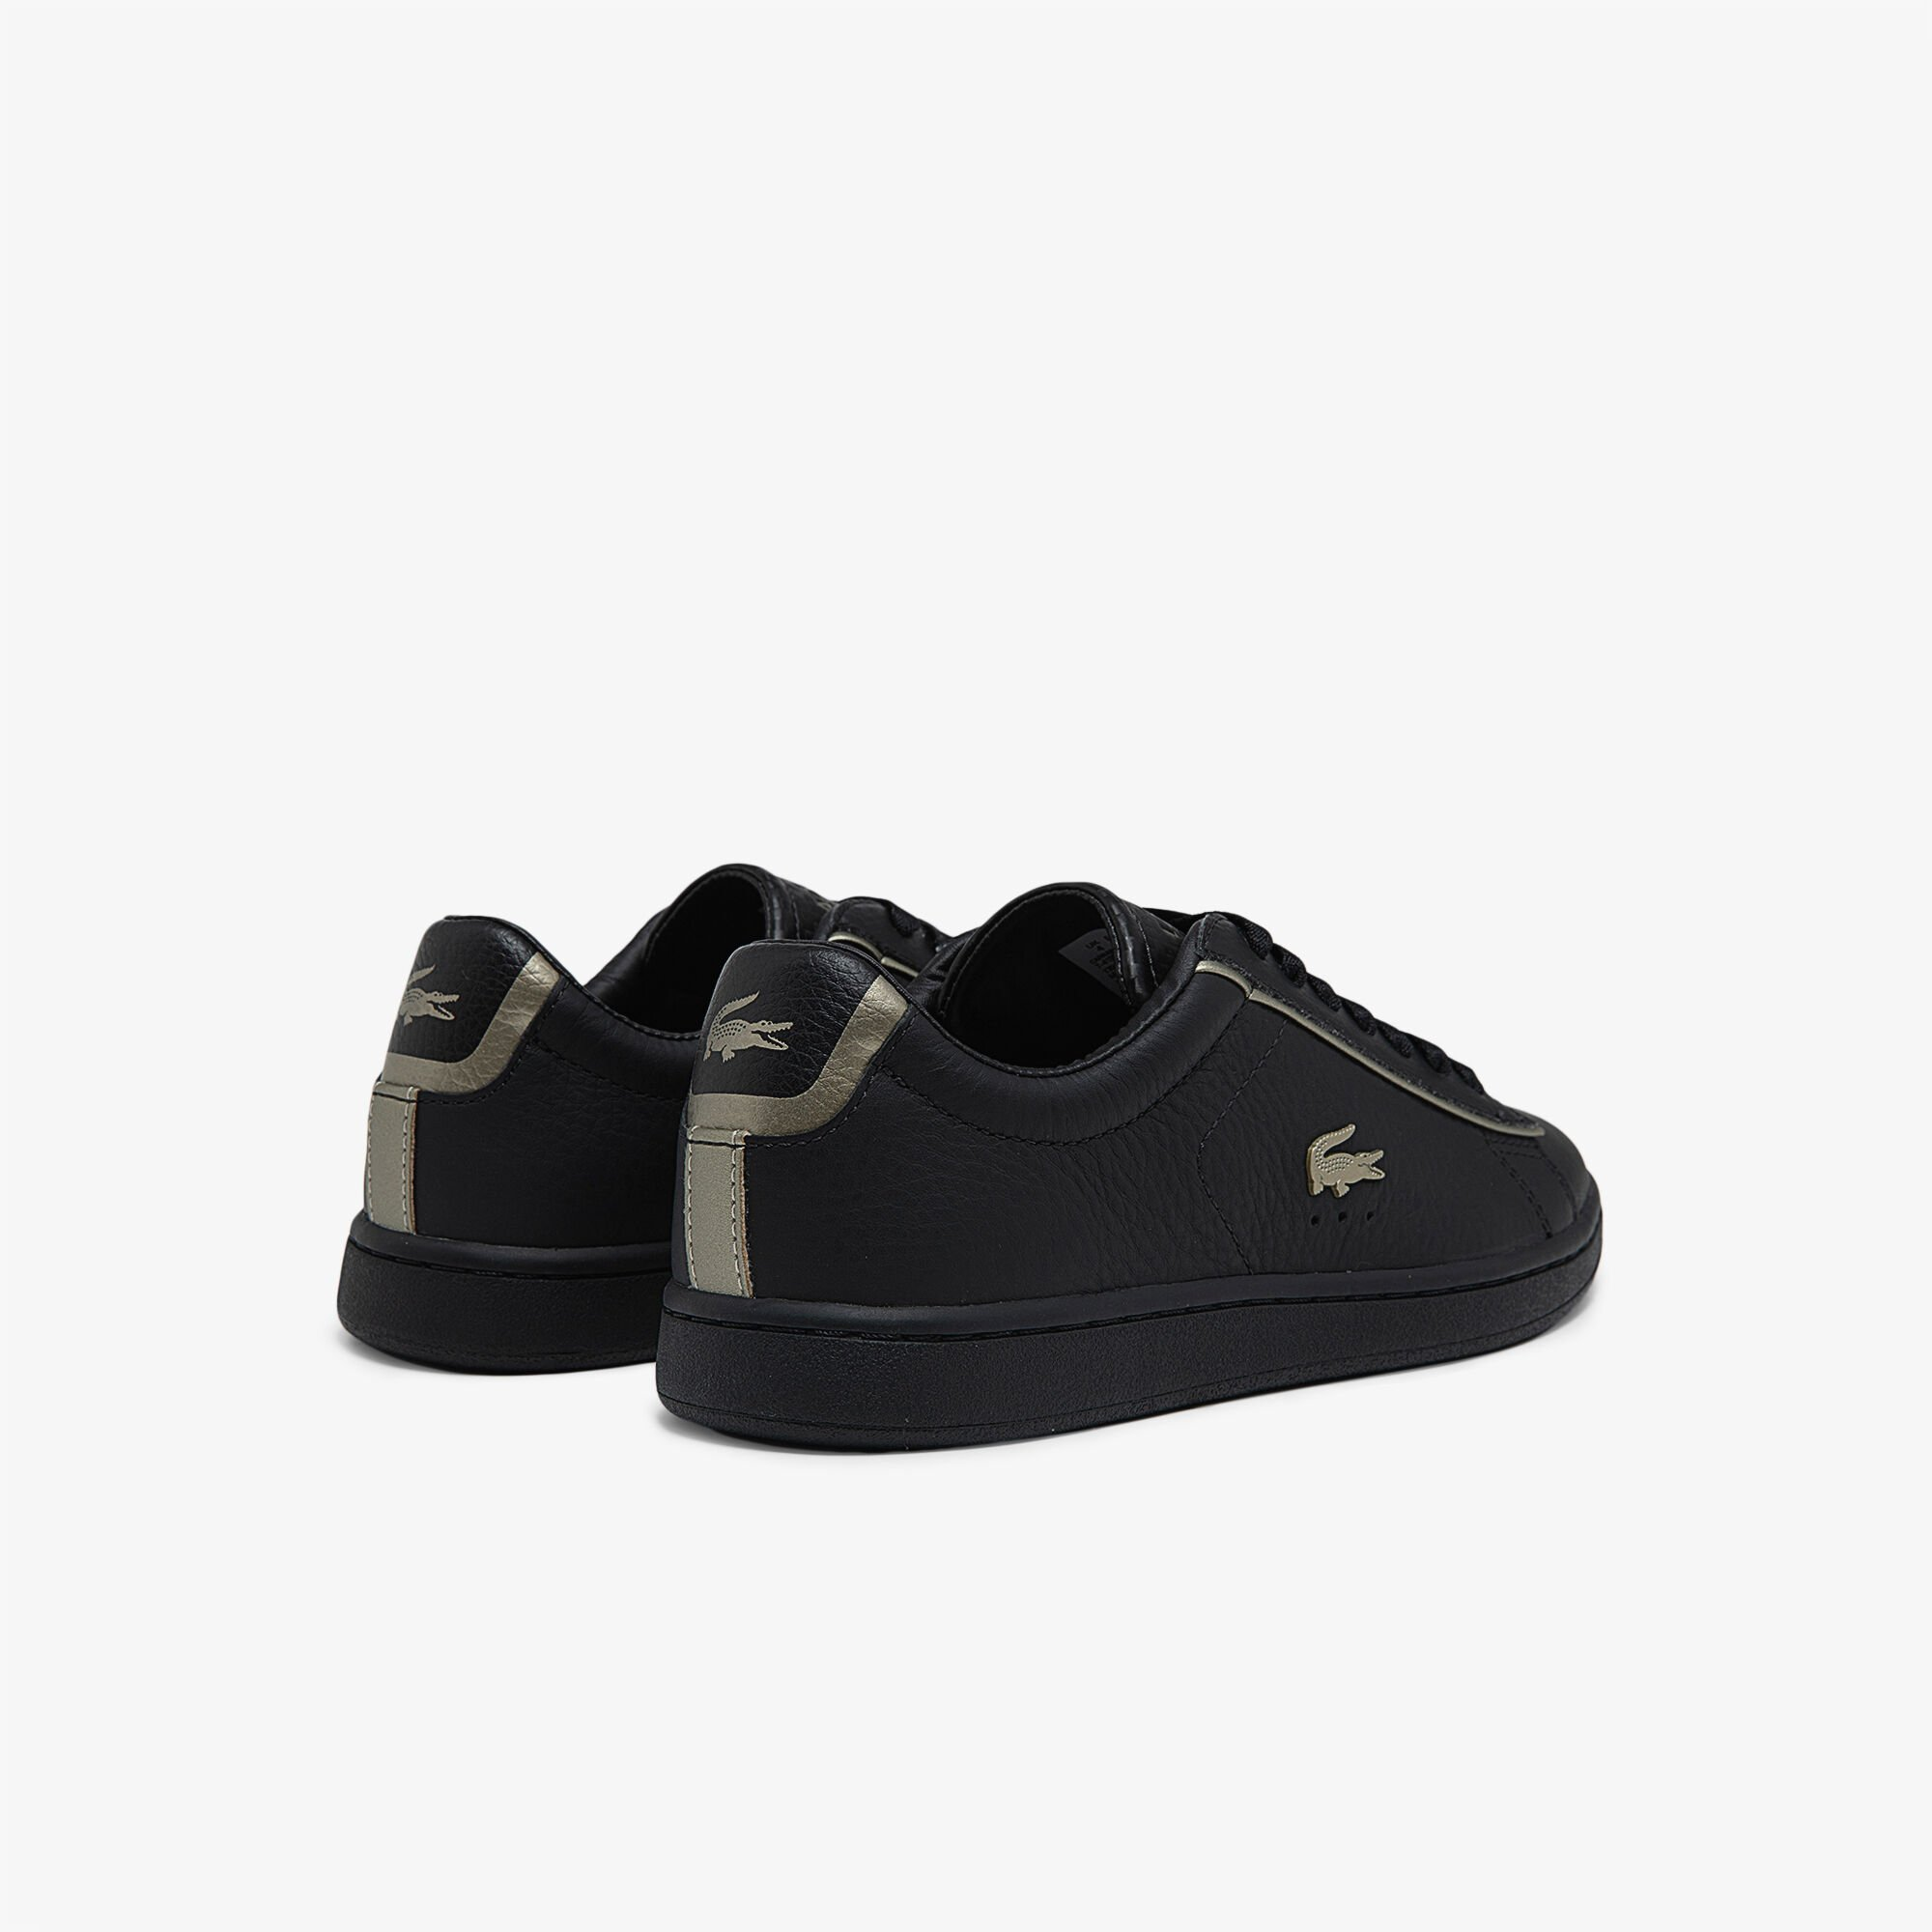 Women's Carnaby Evo Leather Platinum Detailing Sneakers